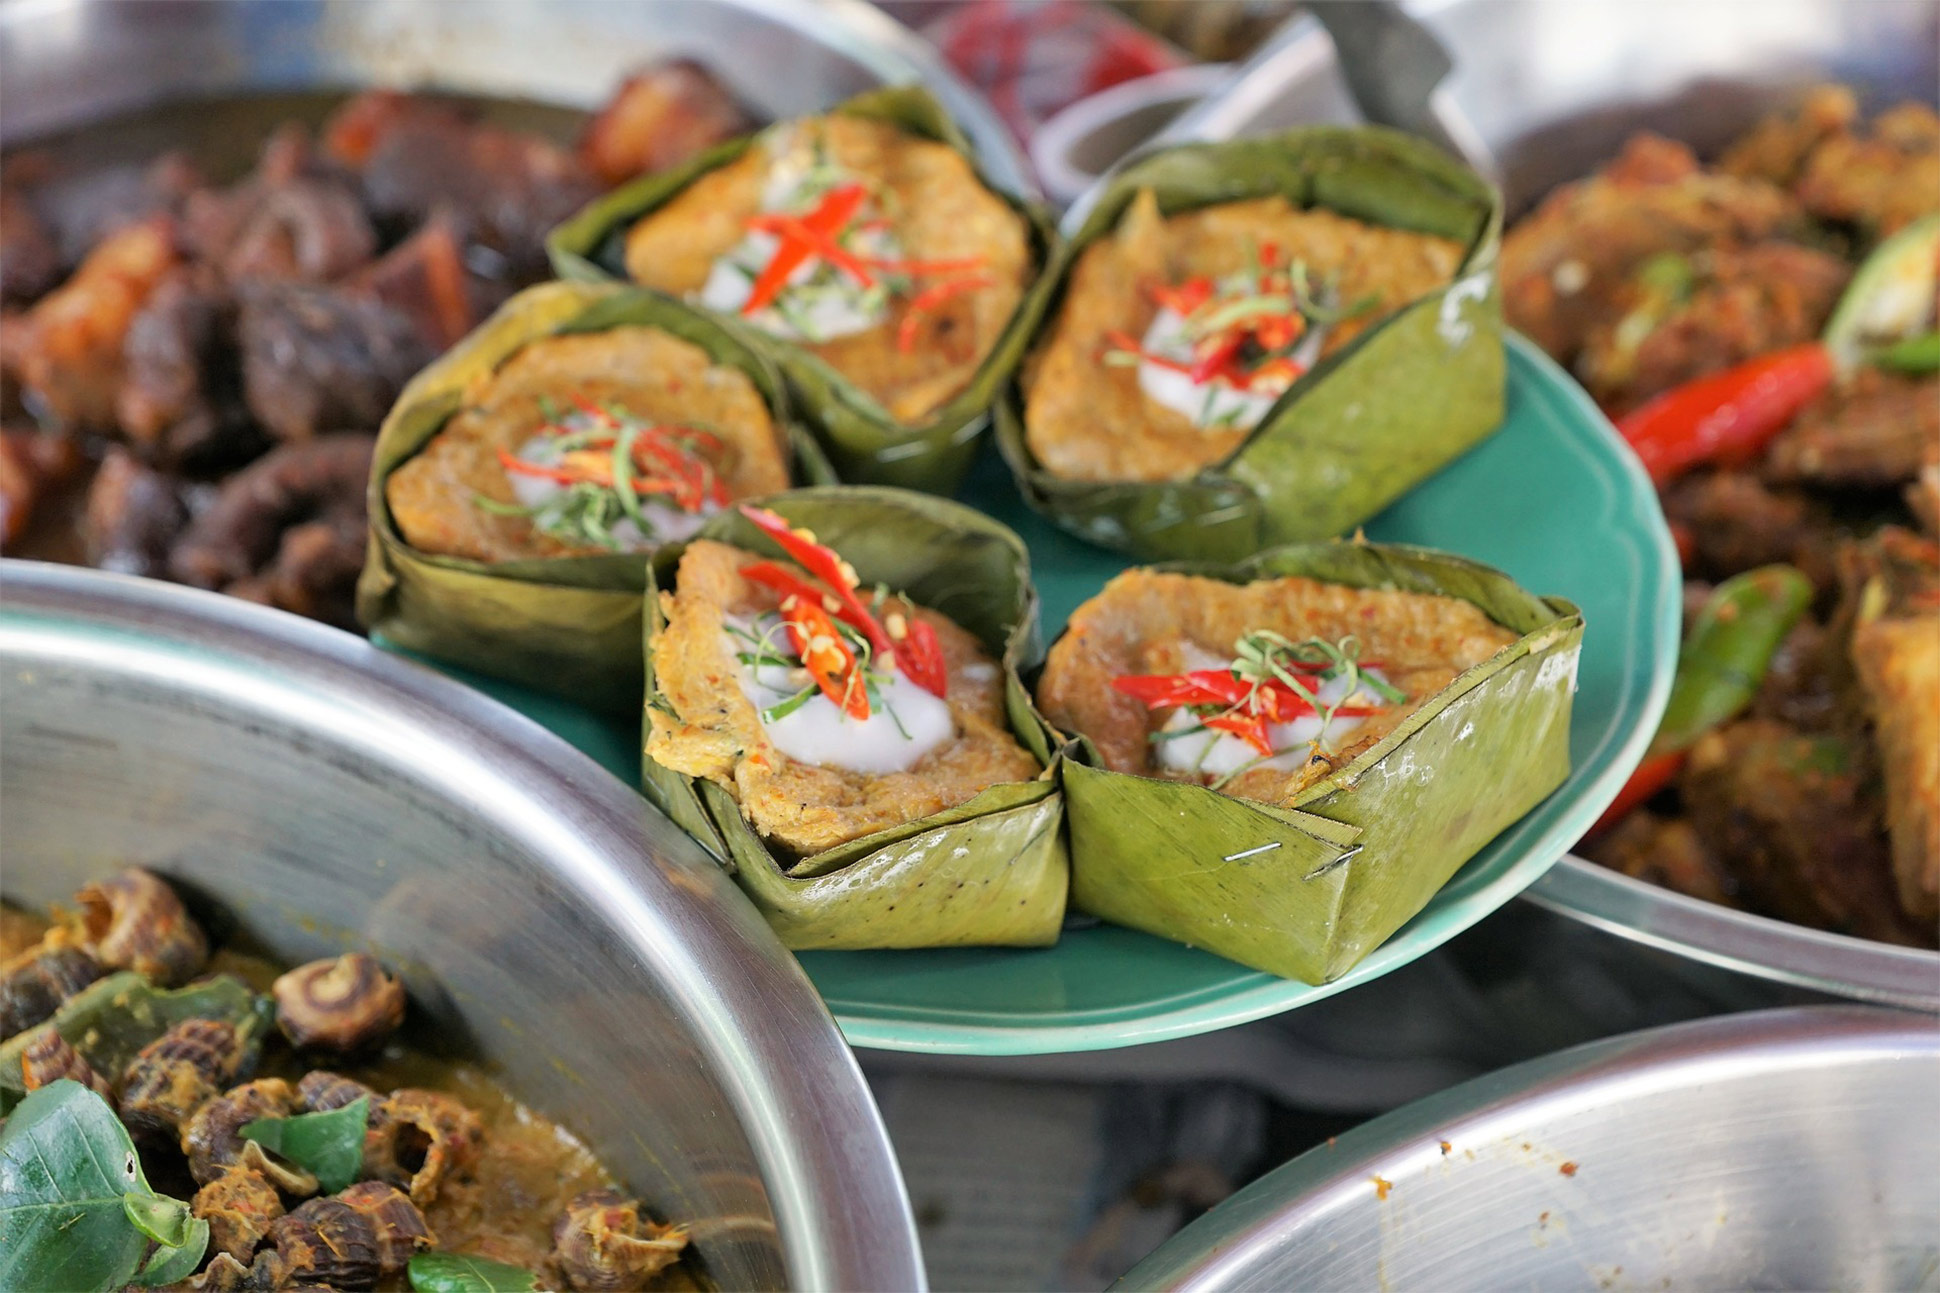 A variety of foods on offer at Lopburi's night market, Lopburi, Thailand.